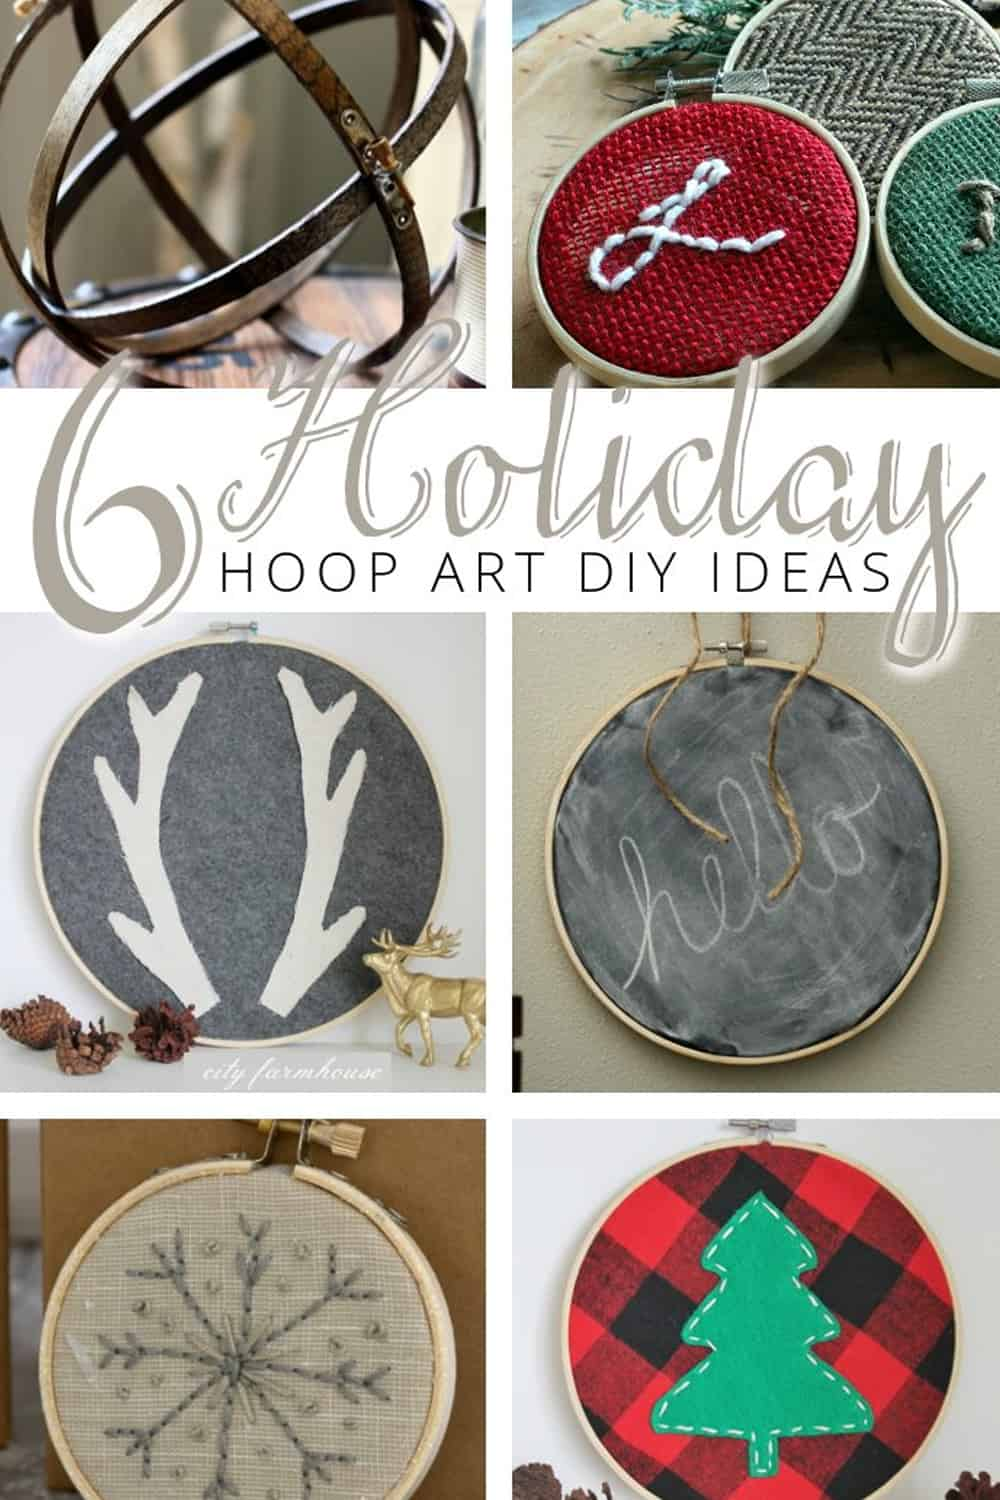 6 Holiday Embroidery Hoop Art DIY Ideas